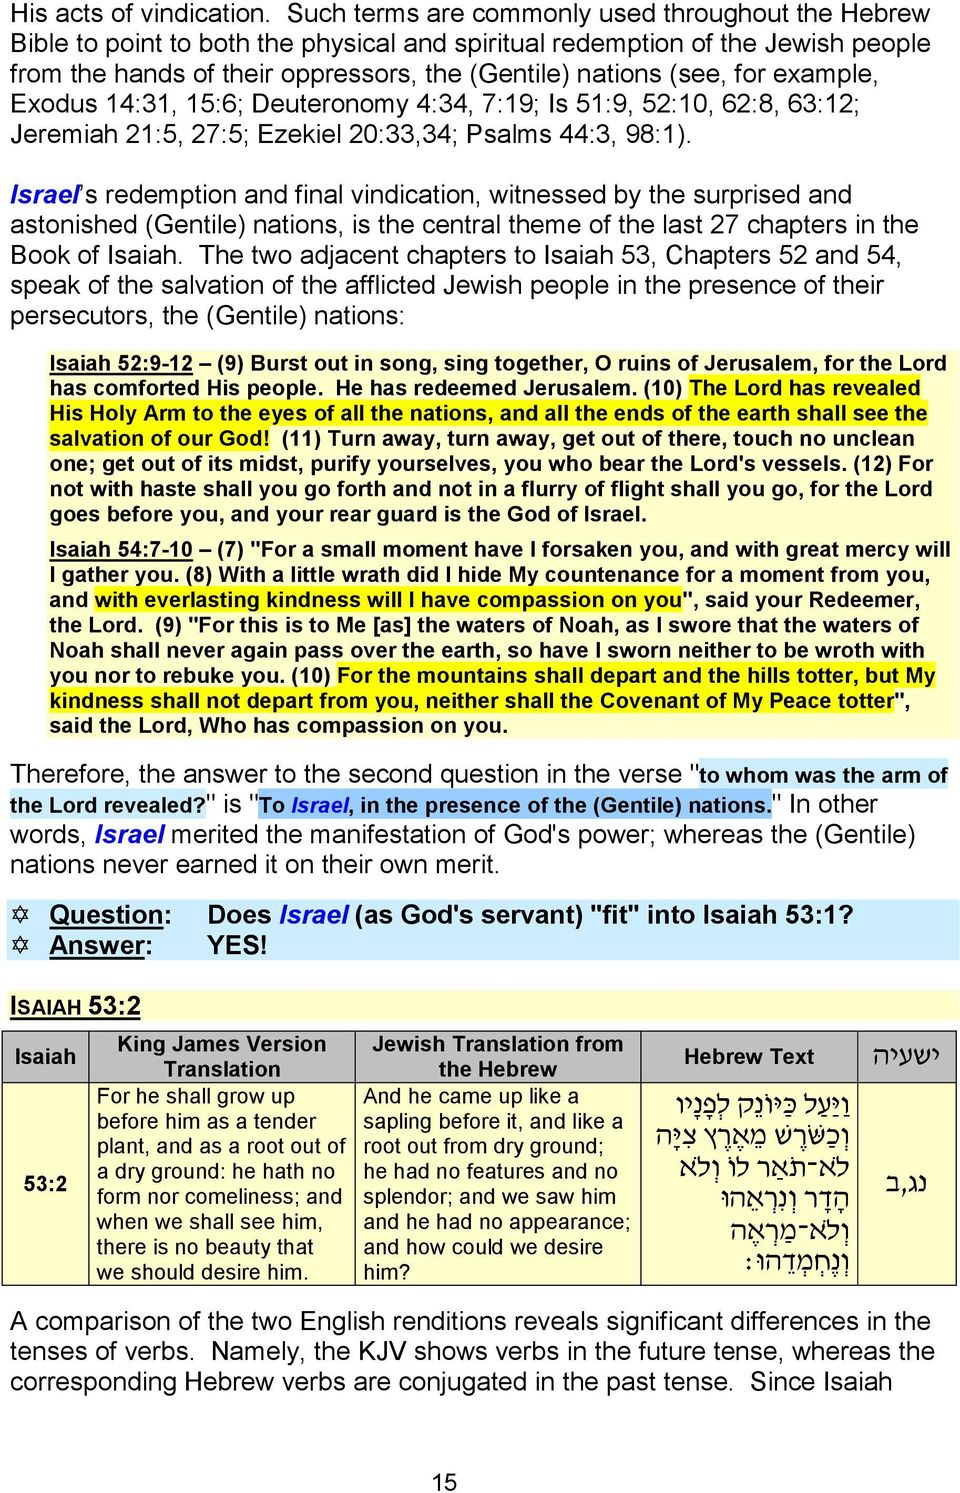 WHO IS THE SUFFERING SERVANT IN ISAIAH 53? PART I - THE